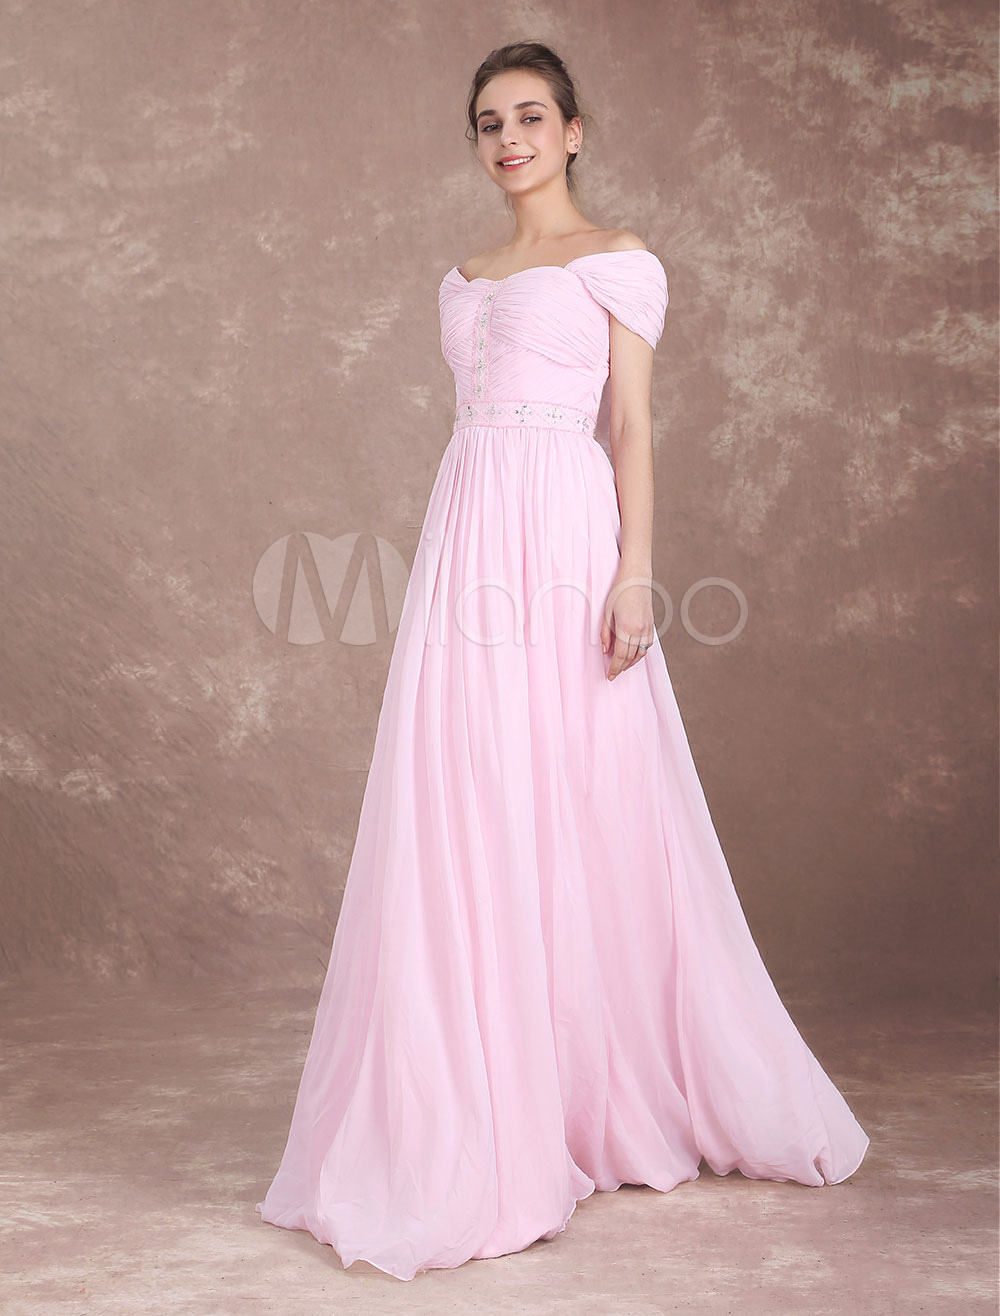 Bridesmaid Dress Soft Pink Chiffon Long Prom Dresses Off The Shoulder Beaded Pleated Floor Length Wedding Party Dresses